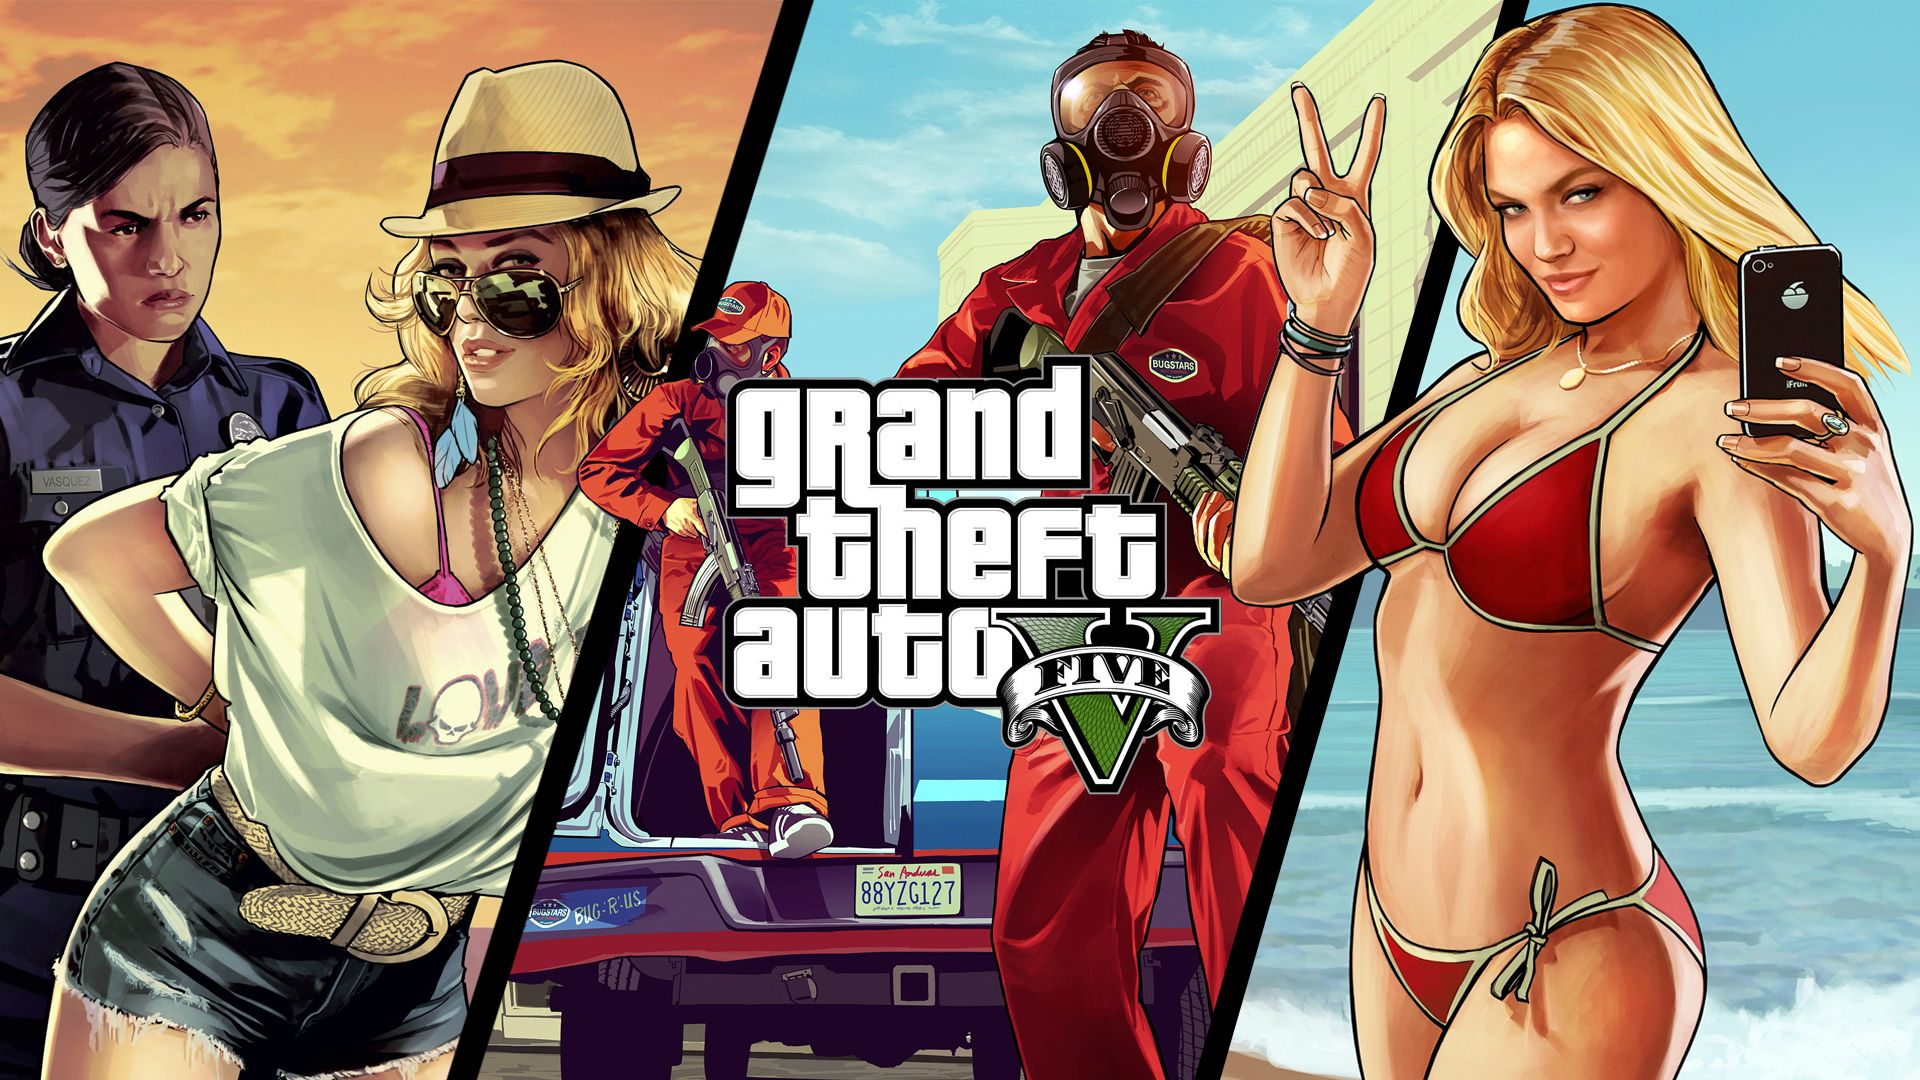 Grand Theft Auto Wallpaper High Quality